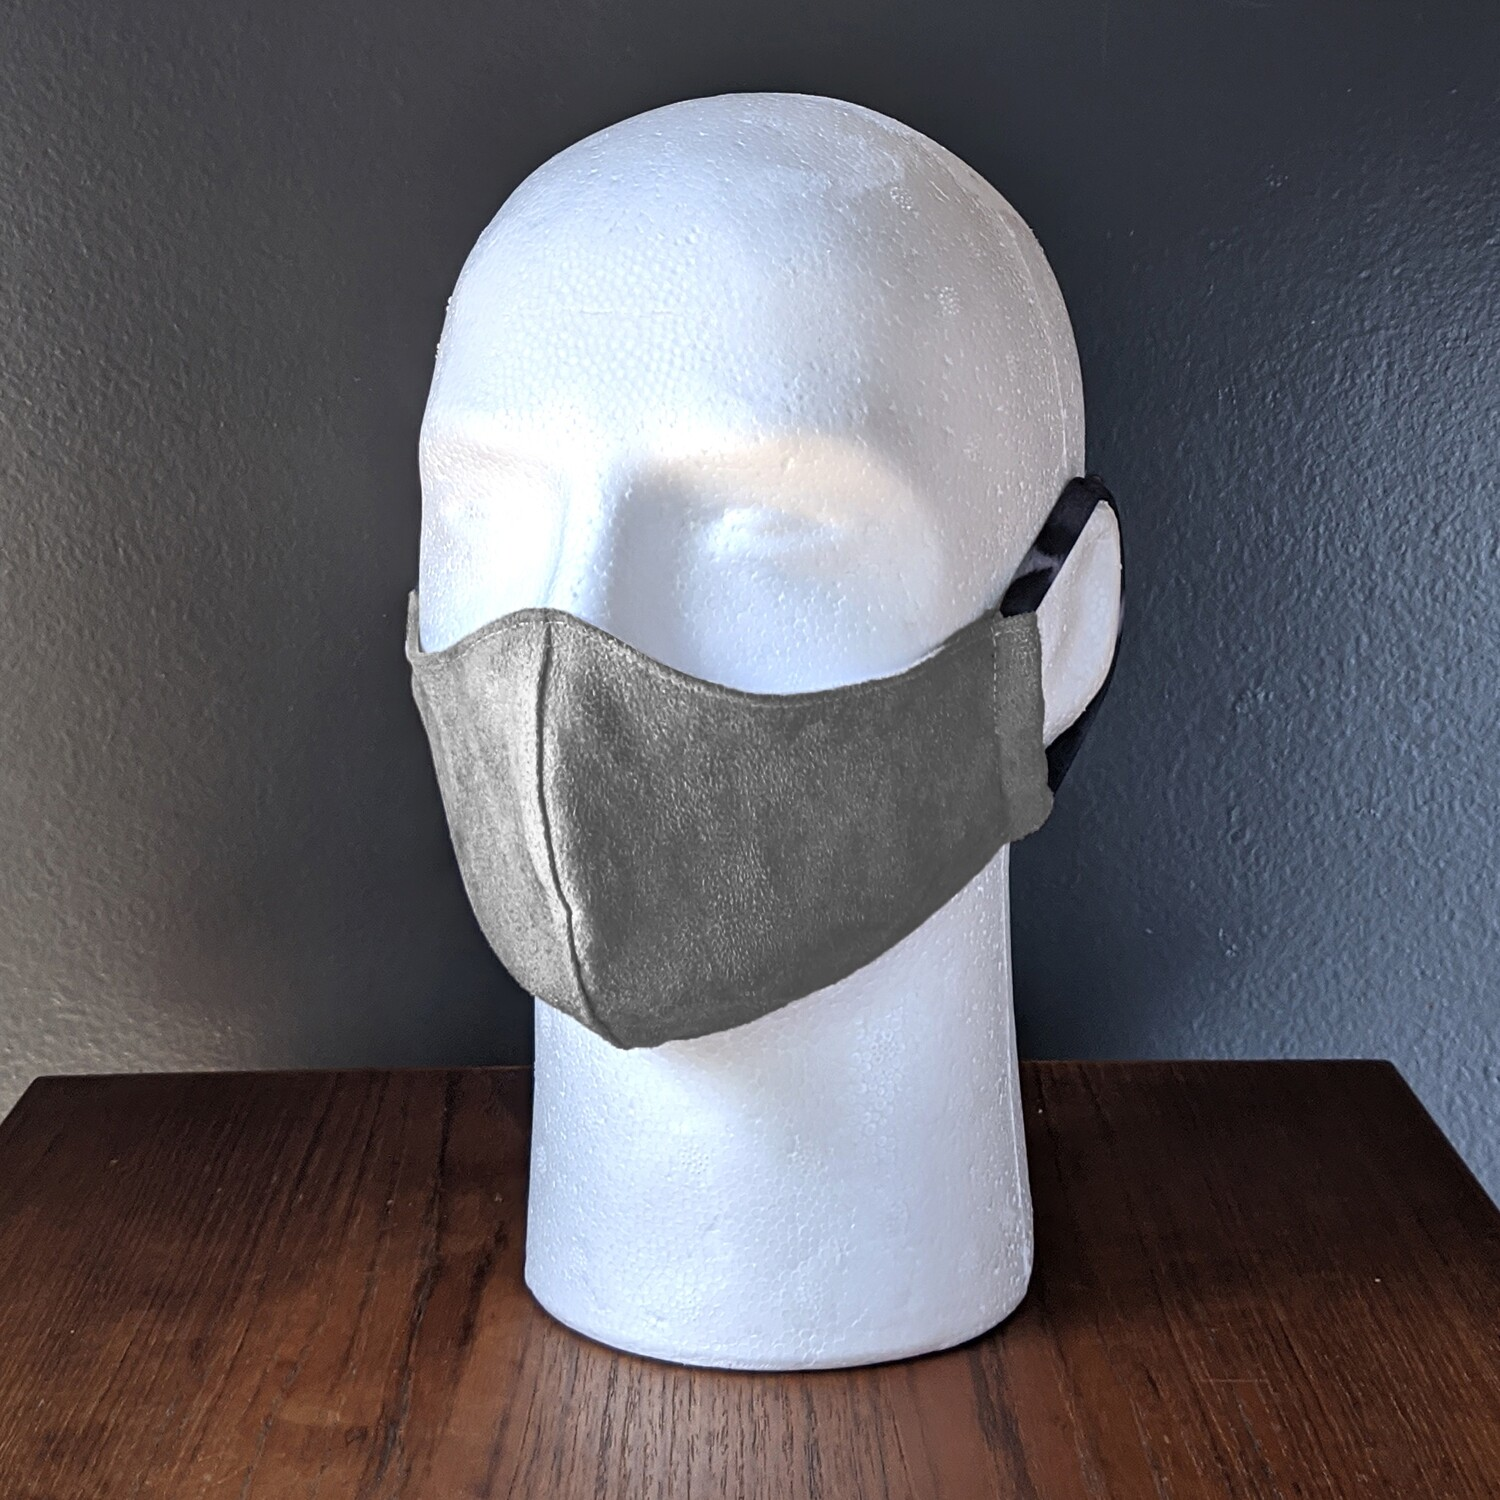 Charocal Gray Suede Costume Face Mask, Pride, Mardi Gras, Halloween. Small, Unisex, Reusable, Double Layer for Smog, Pollen, Dust, Smoke. Made in USA